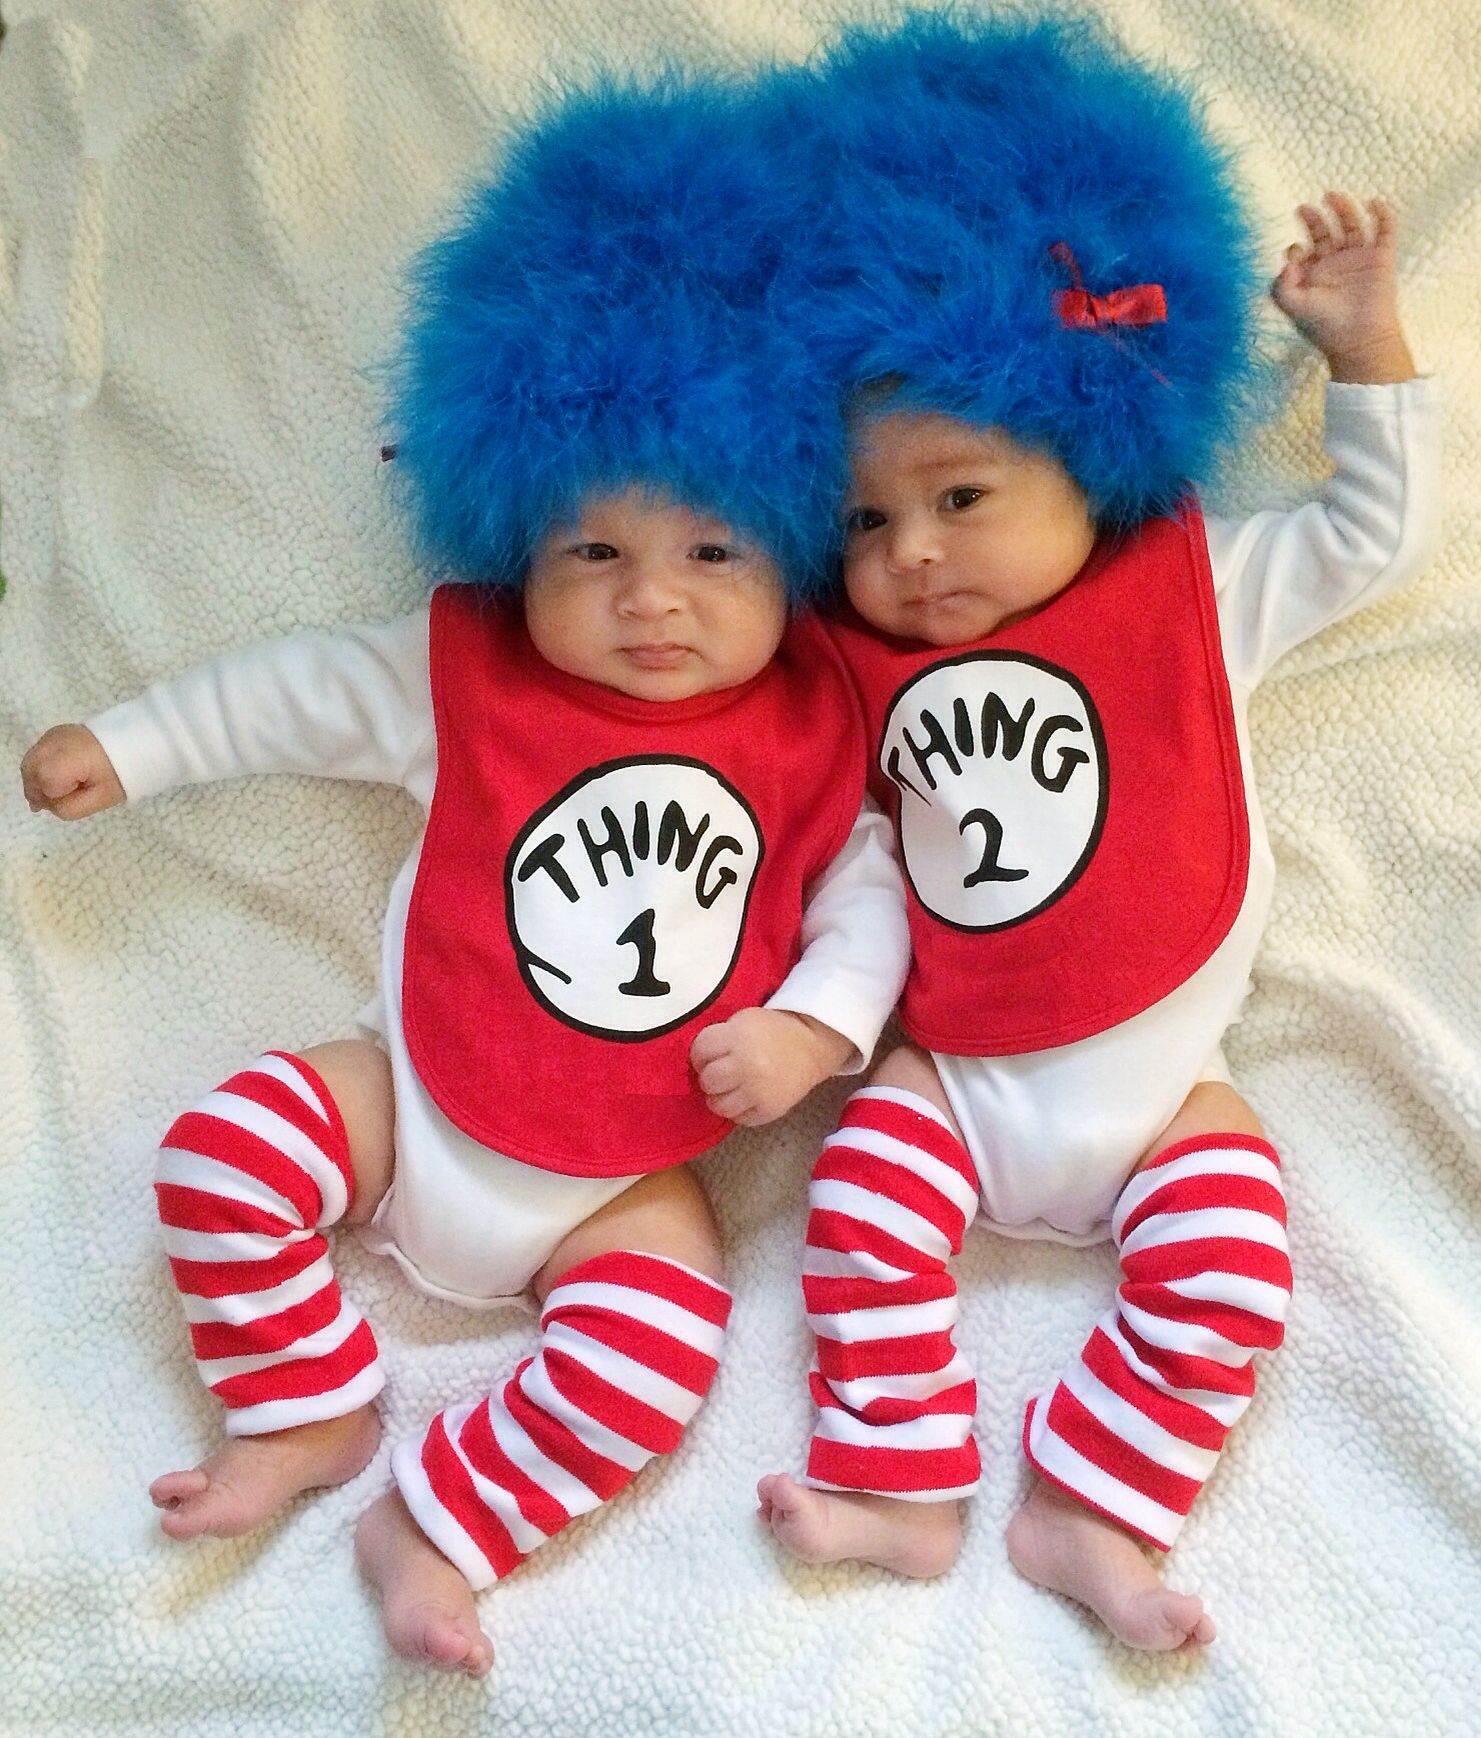 Thing 1 Thing 2 from Dr Seuss. Cat in the Hat. Twins, boy girl. 8 weeks old. Costume, DYI. First Halloween. #twins #thing1thing2 #thing1 #thing2